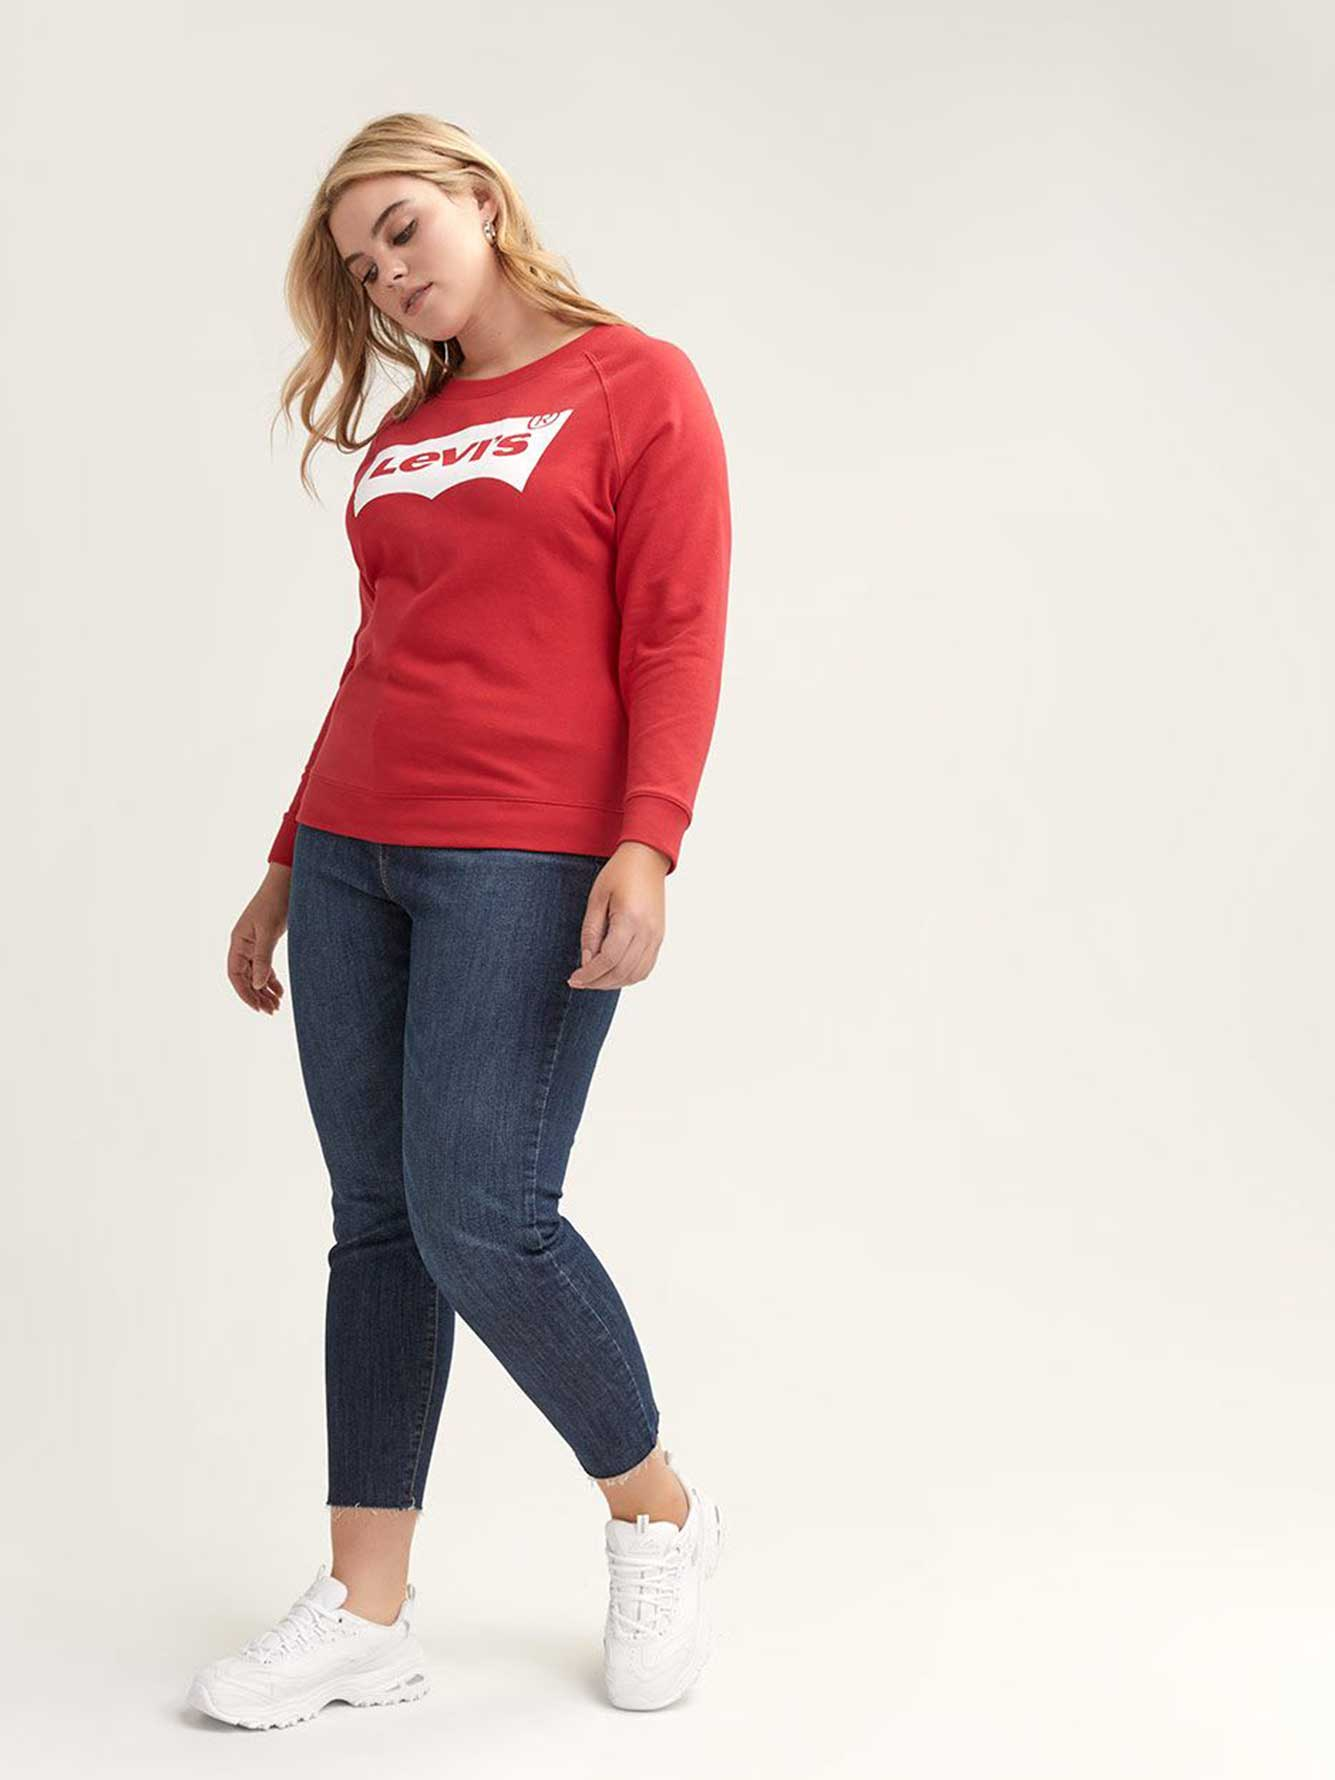 Levi's Graphic Red Crew-Neck Sweatshirt